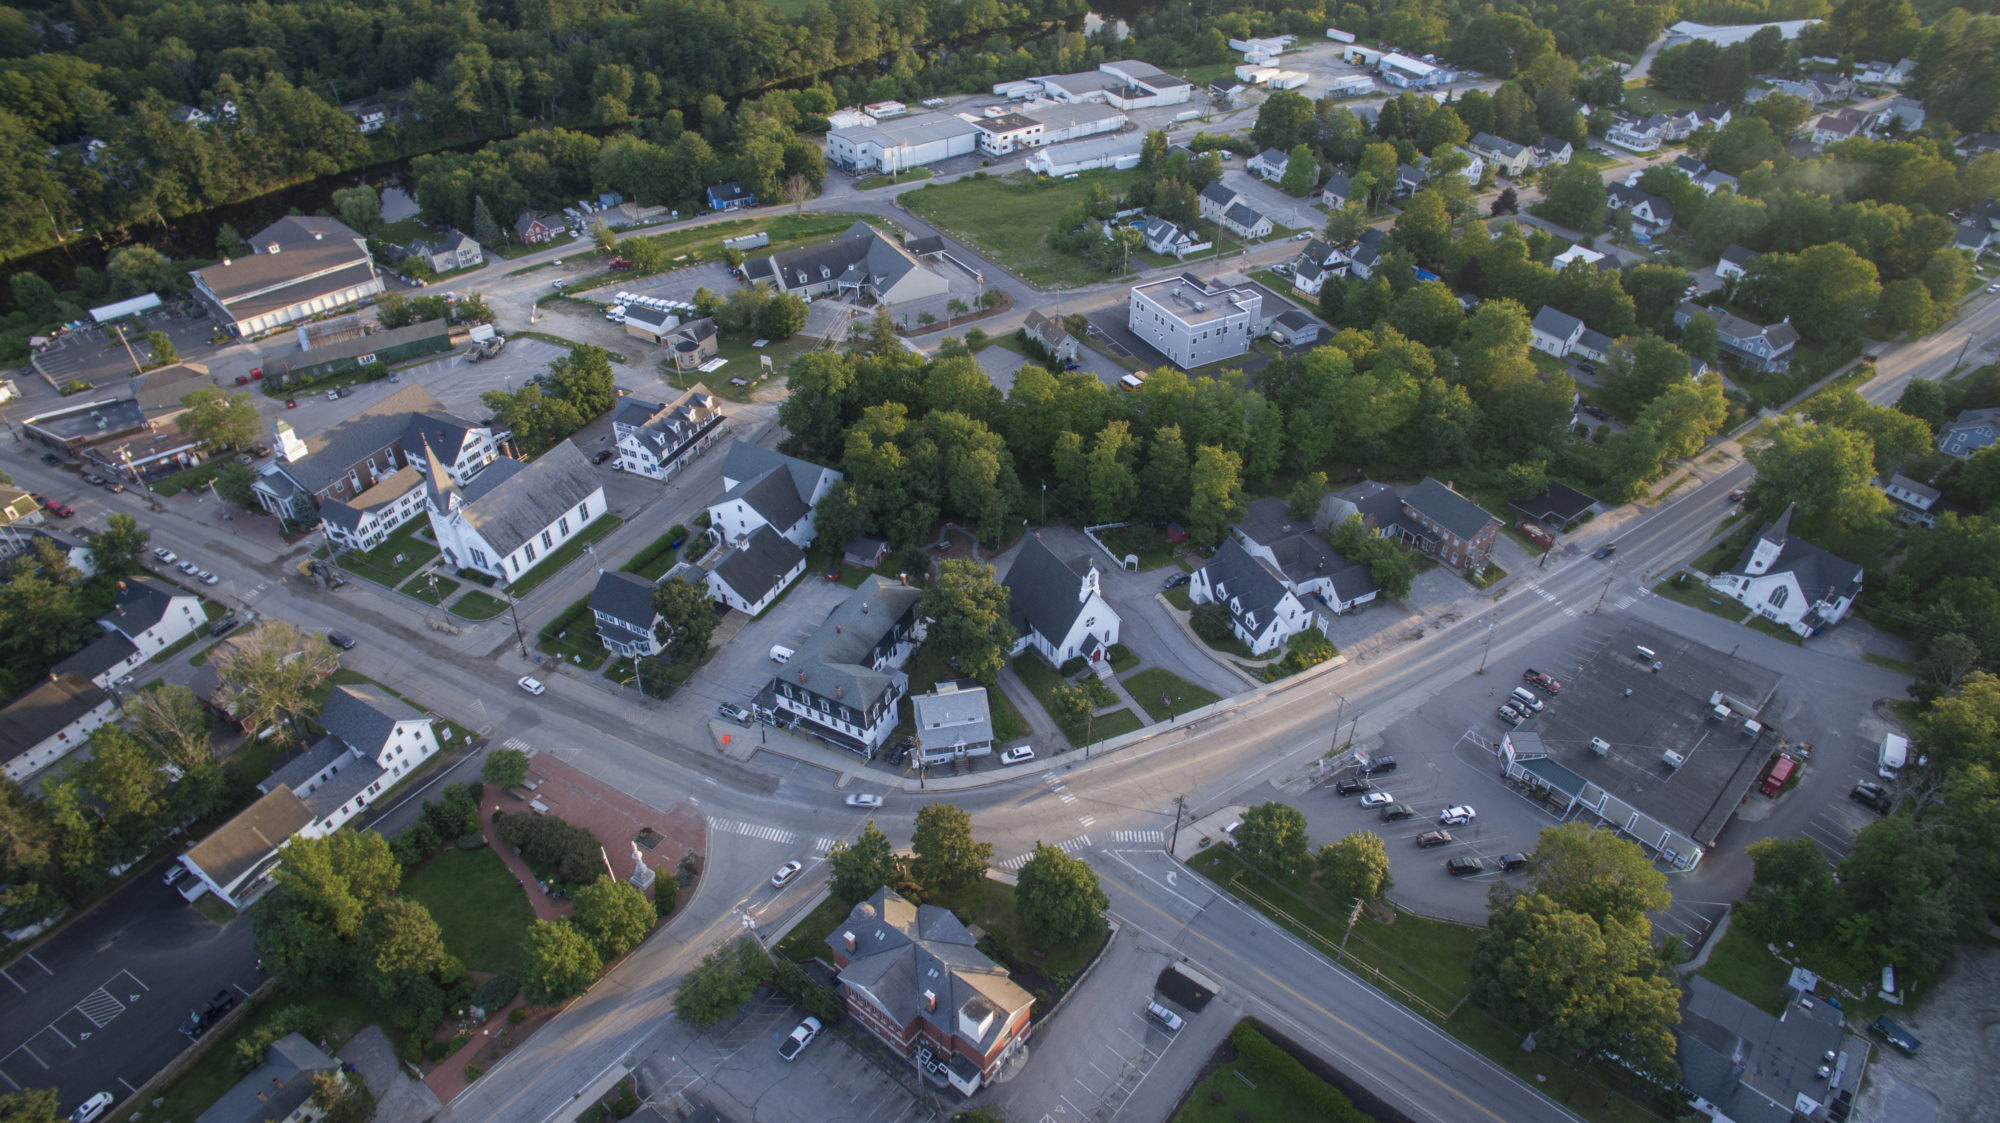 Image of Drone Photography of Goffstown